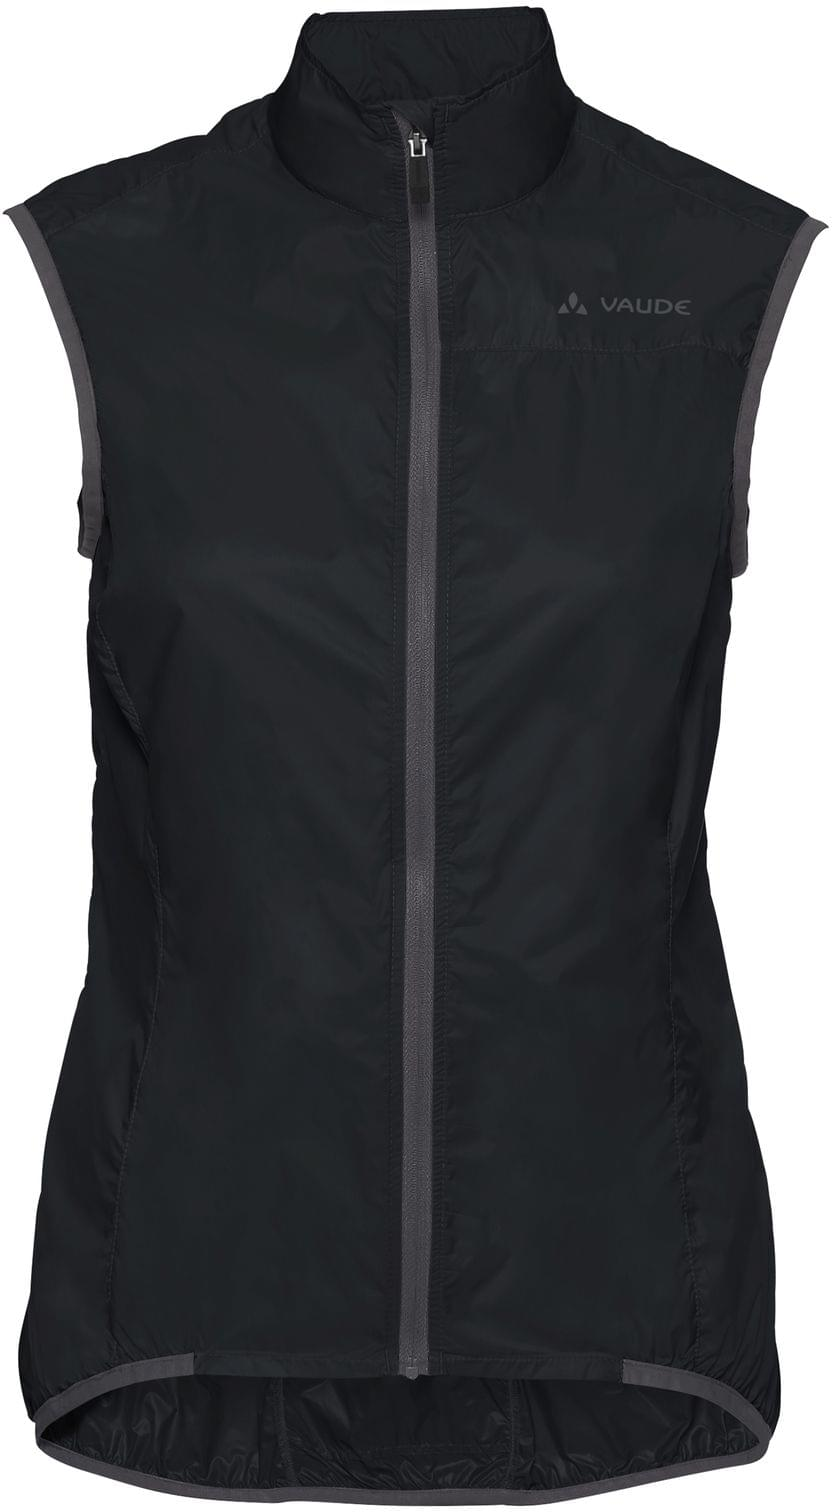 Vaude Women's Air Vest III - black 40